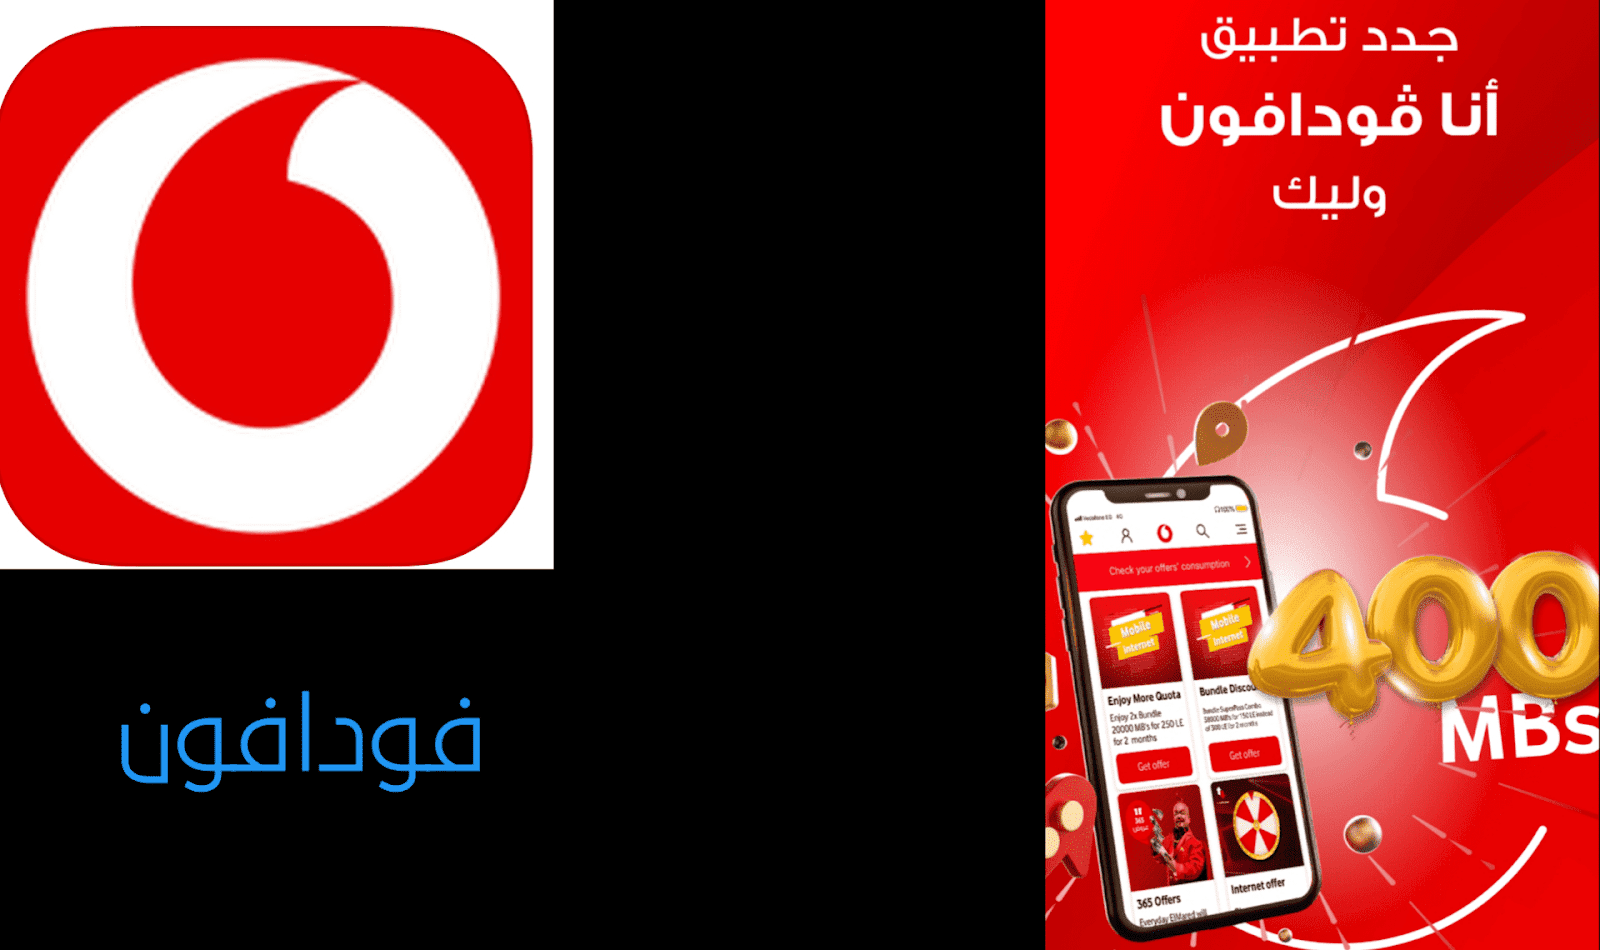 Download the App Ana Vodafone 1Gb for free and find out all the new offers